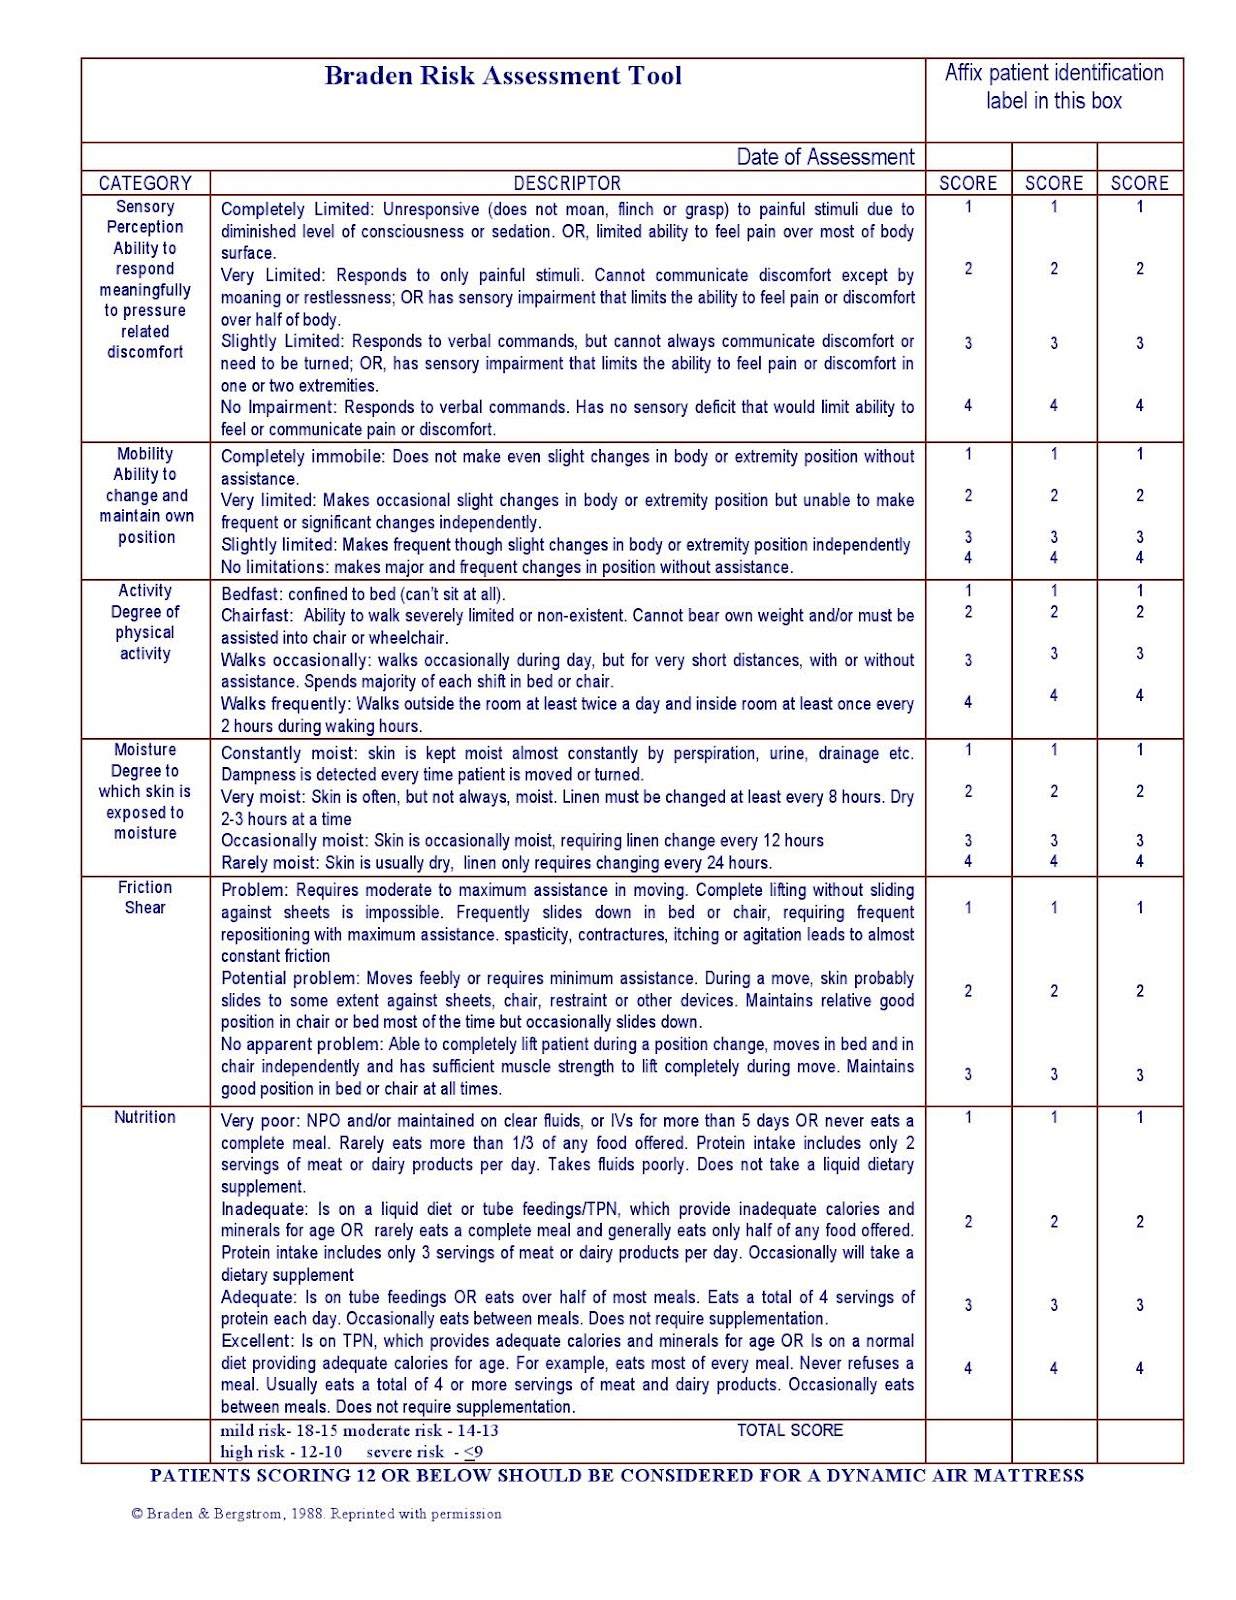 Braden scale assessment form